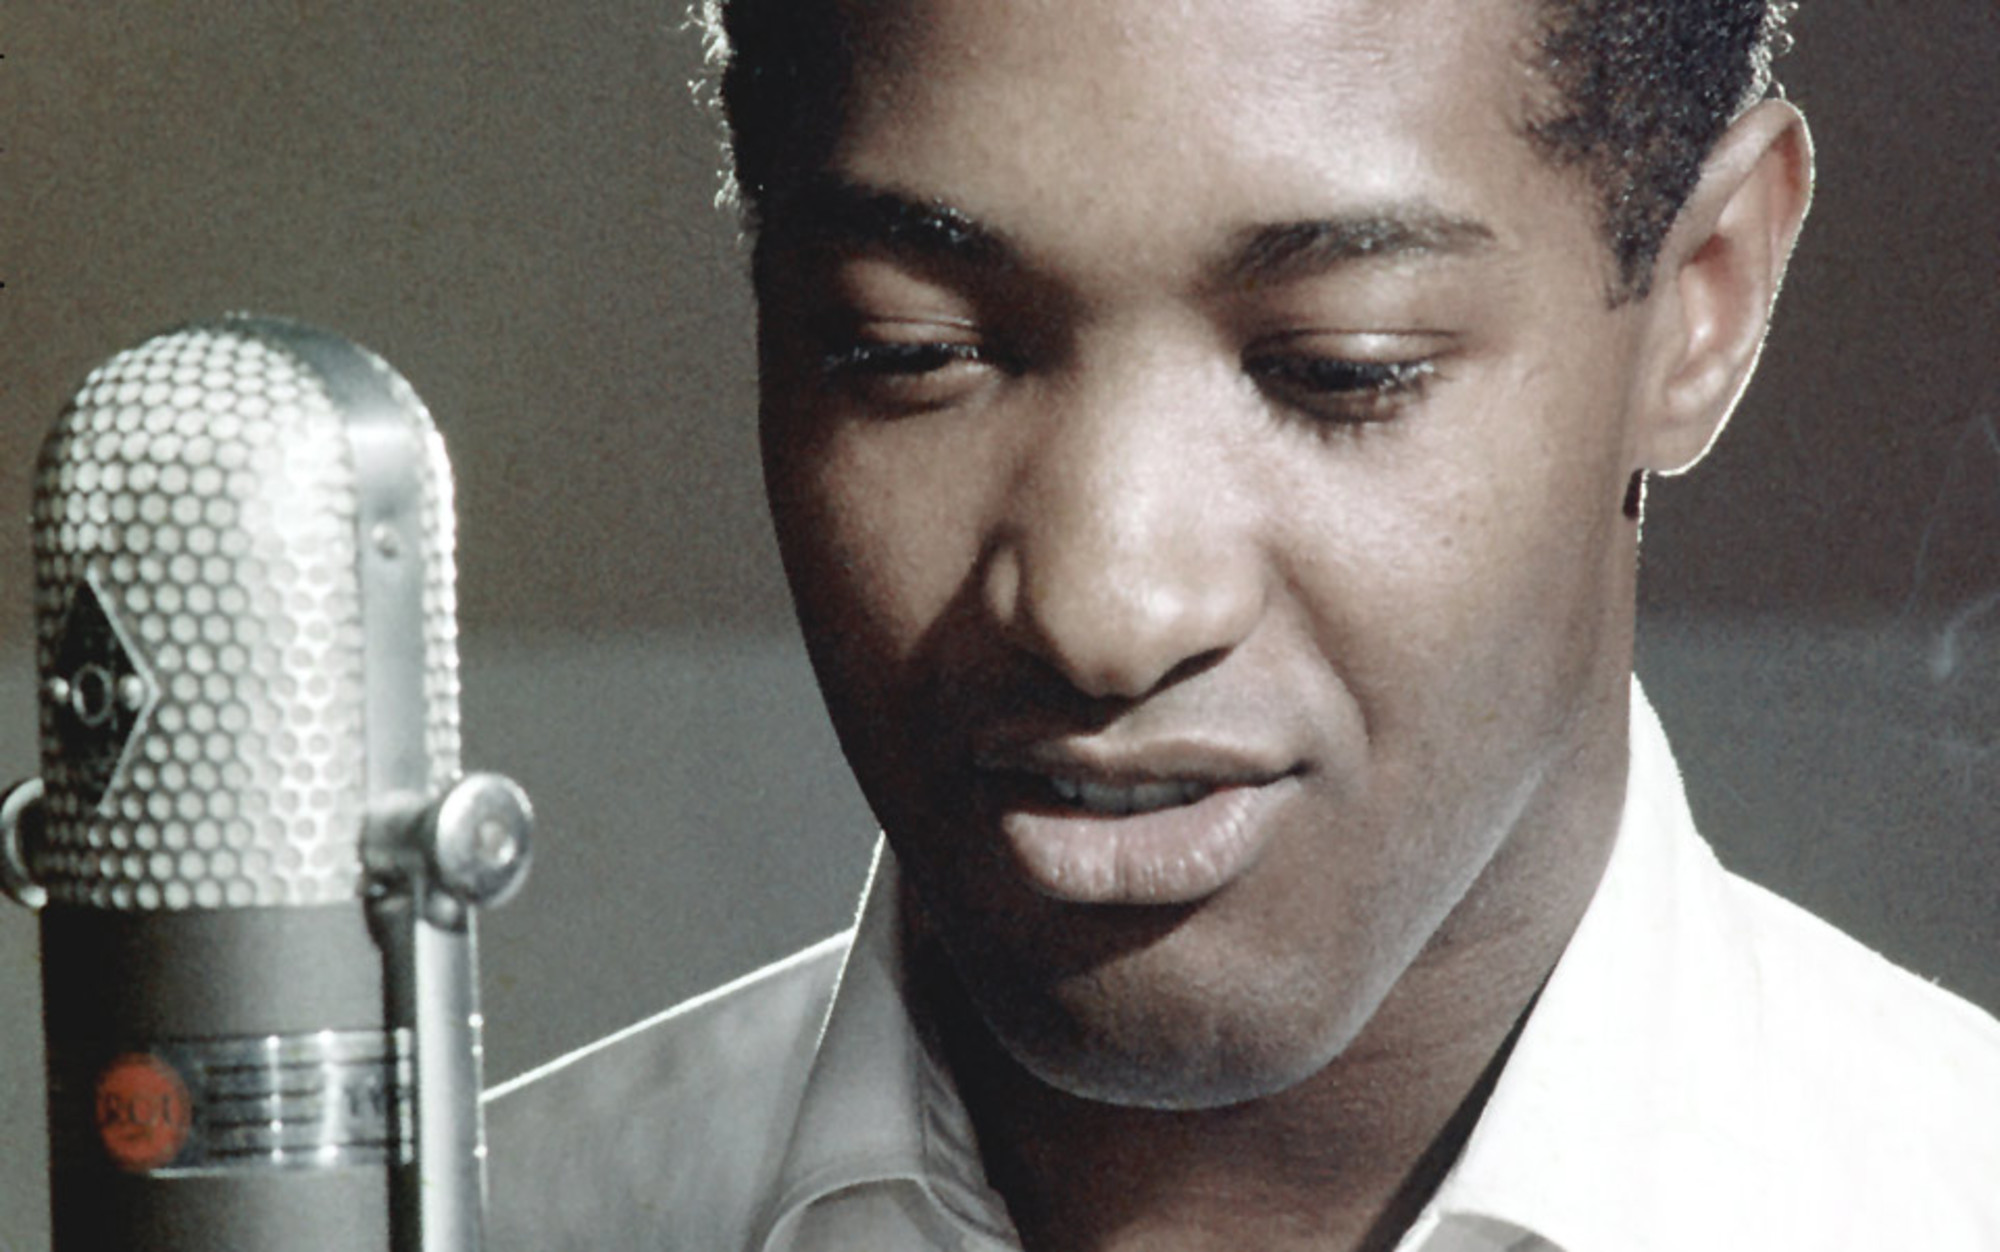 Sam Cooke knew what makes a great protest song work | Aeon ...